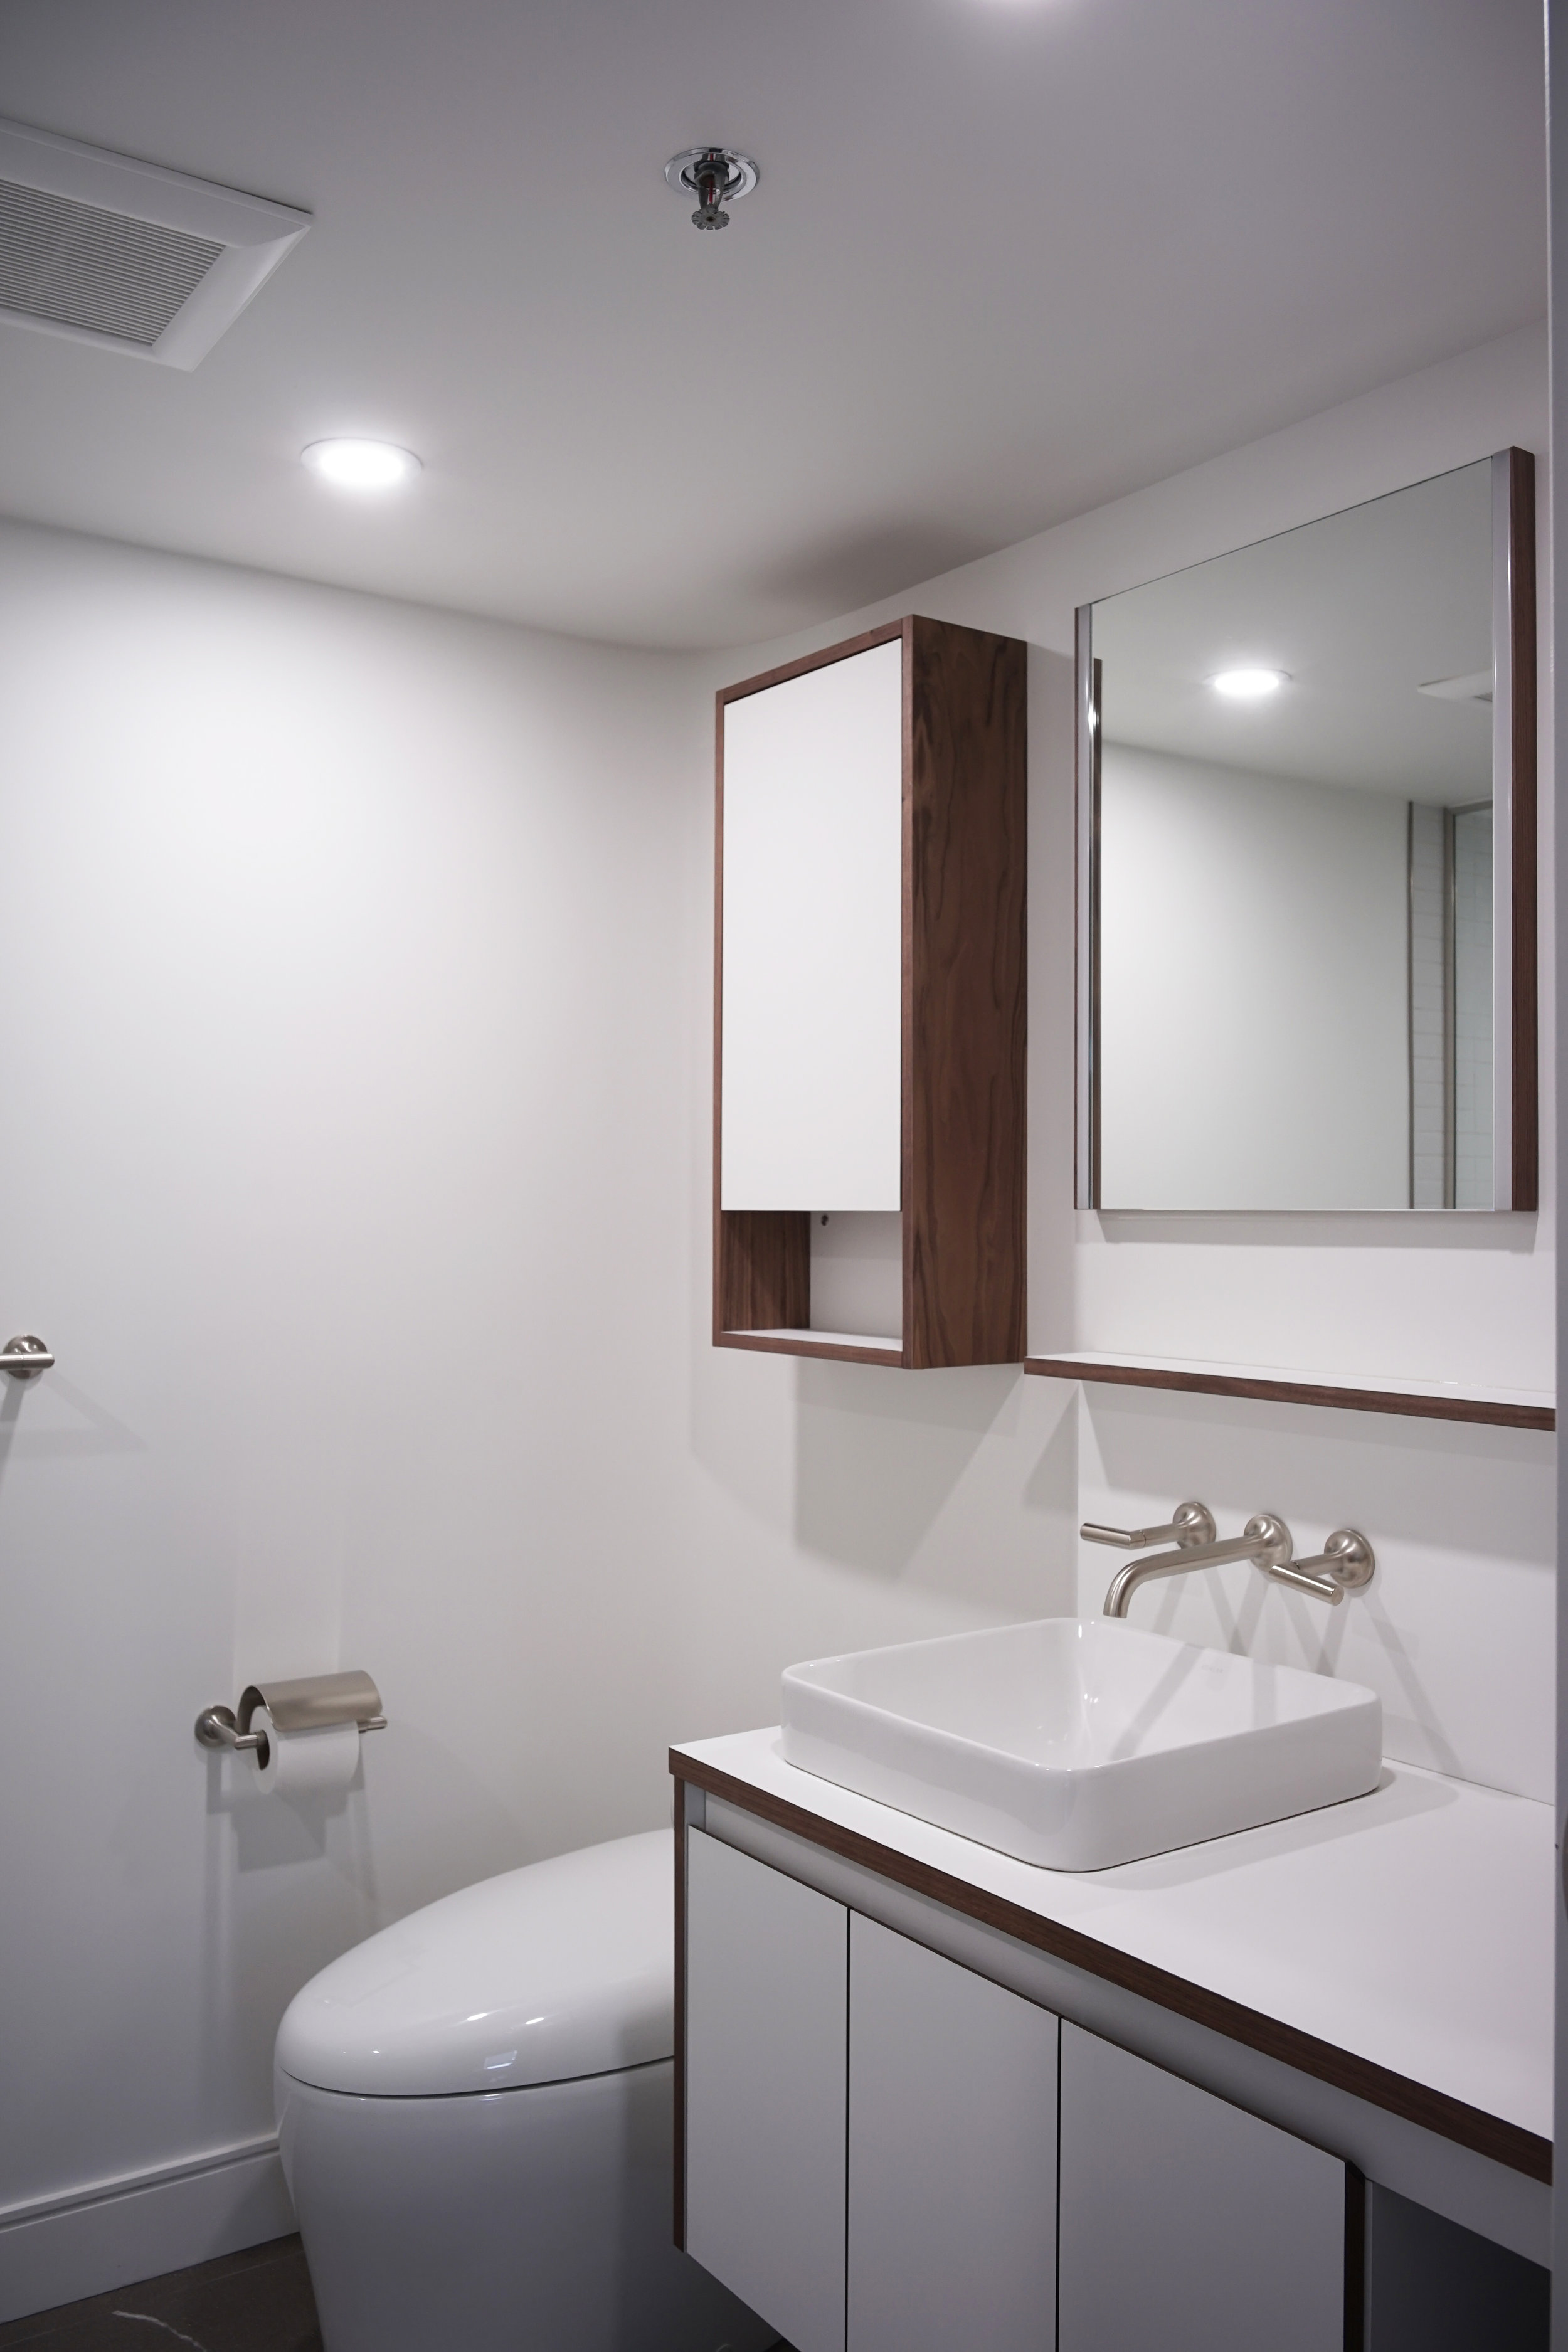 Mirror-Side Dimmable LED Light